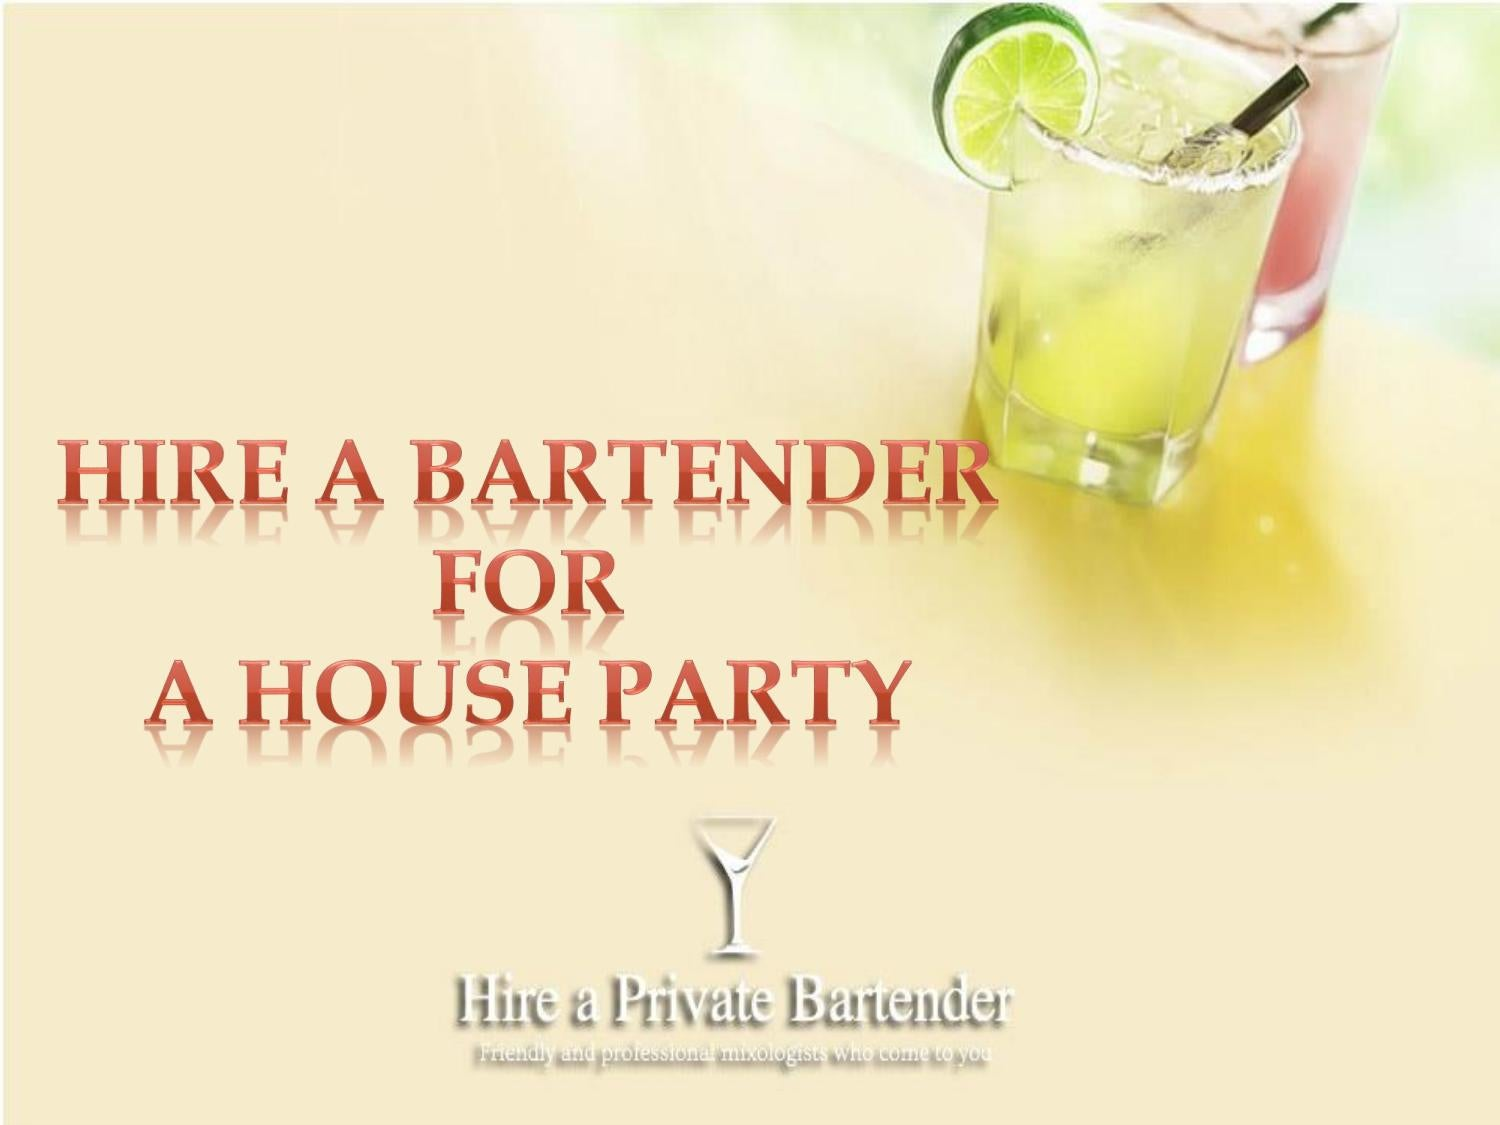 Hire a bartender for a house party-Enjoy At Your Level by